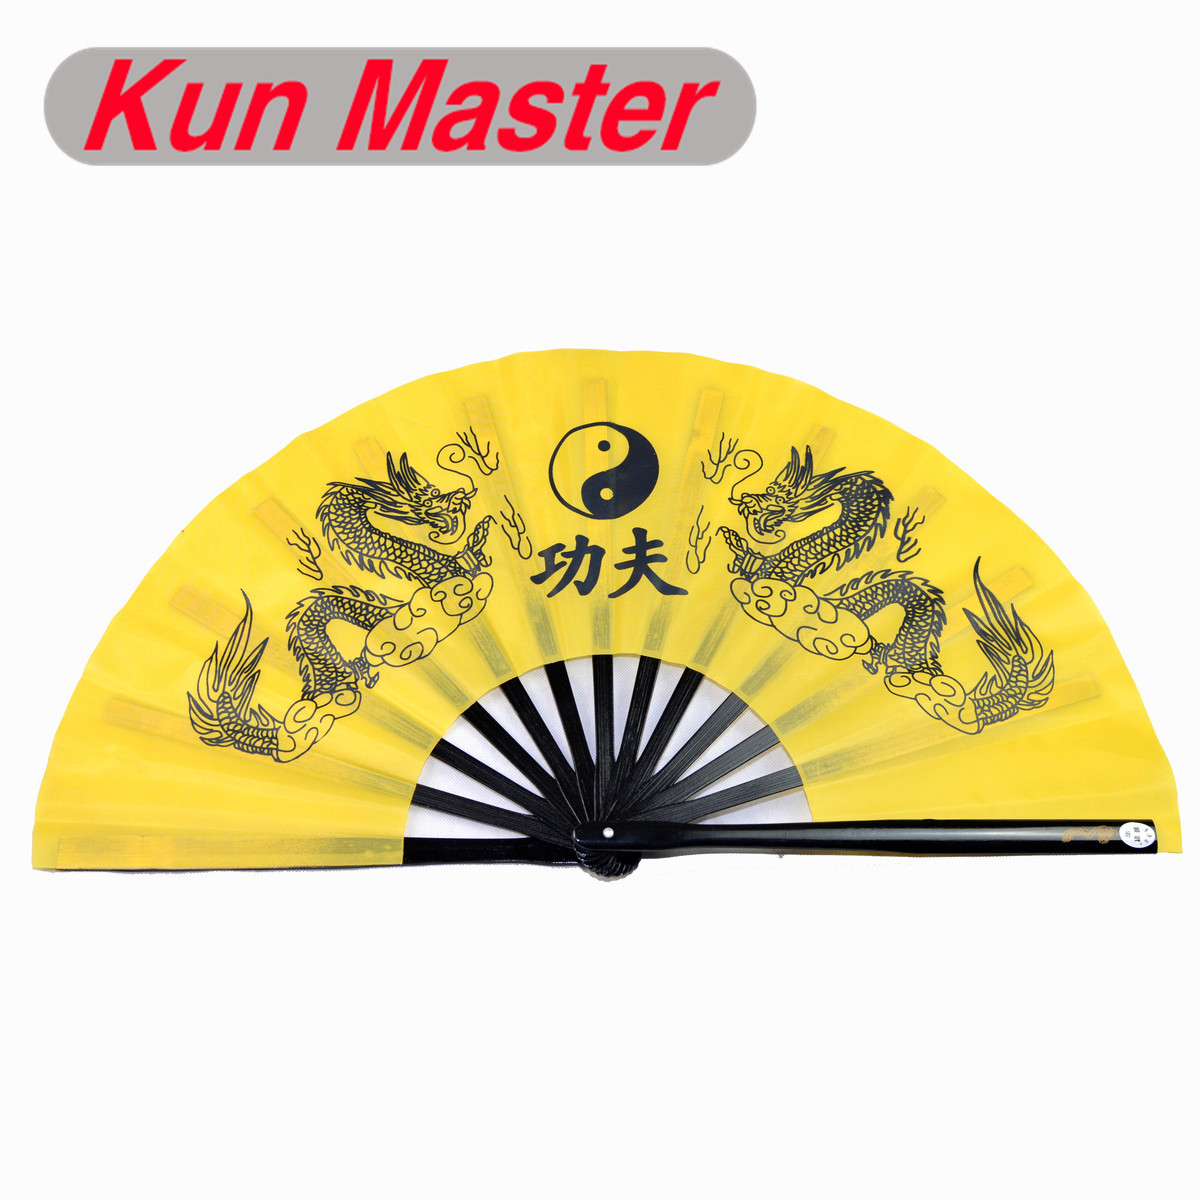 Kun Master 34 Cm  Bamboo Chinese Kung Fu Tai Chi Fan With Double Dragons Design Yellow Cover